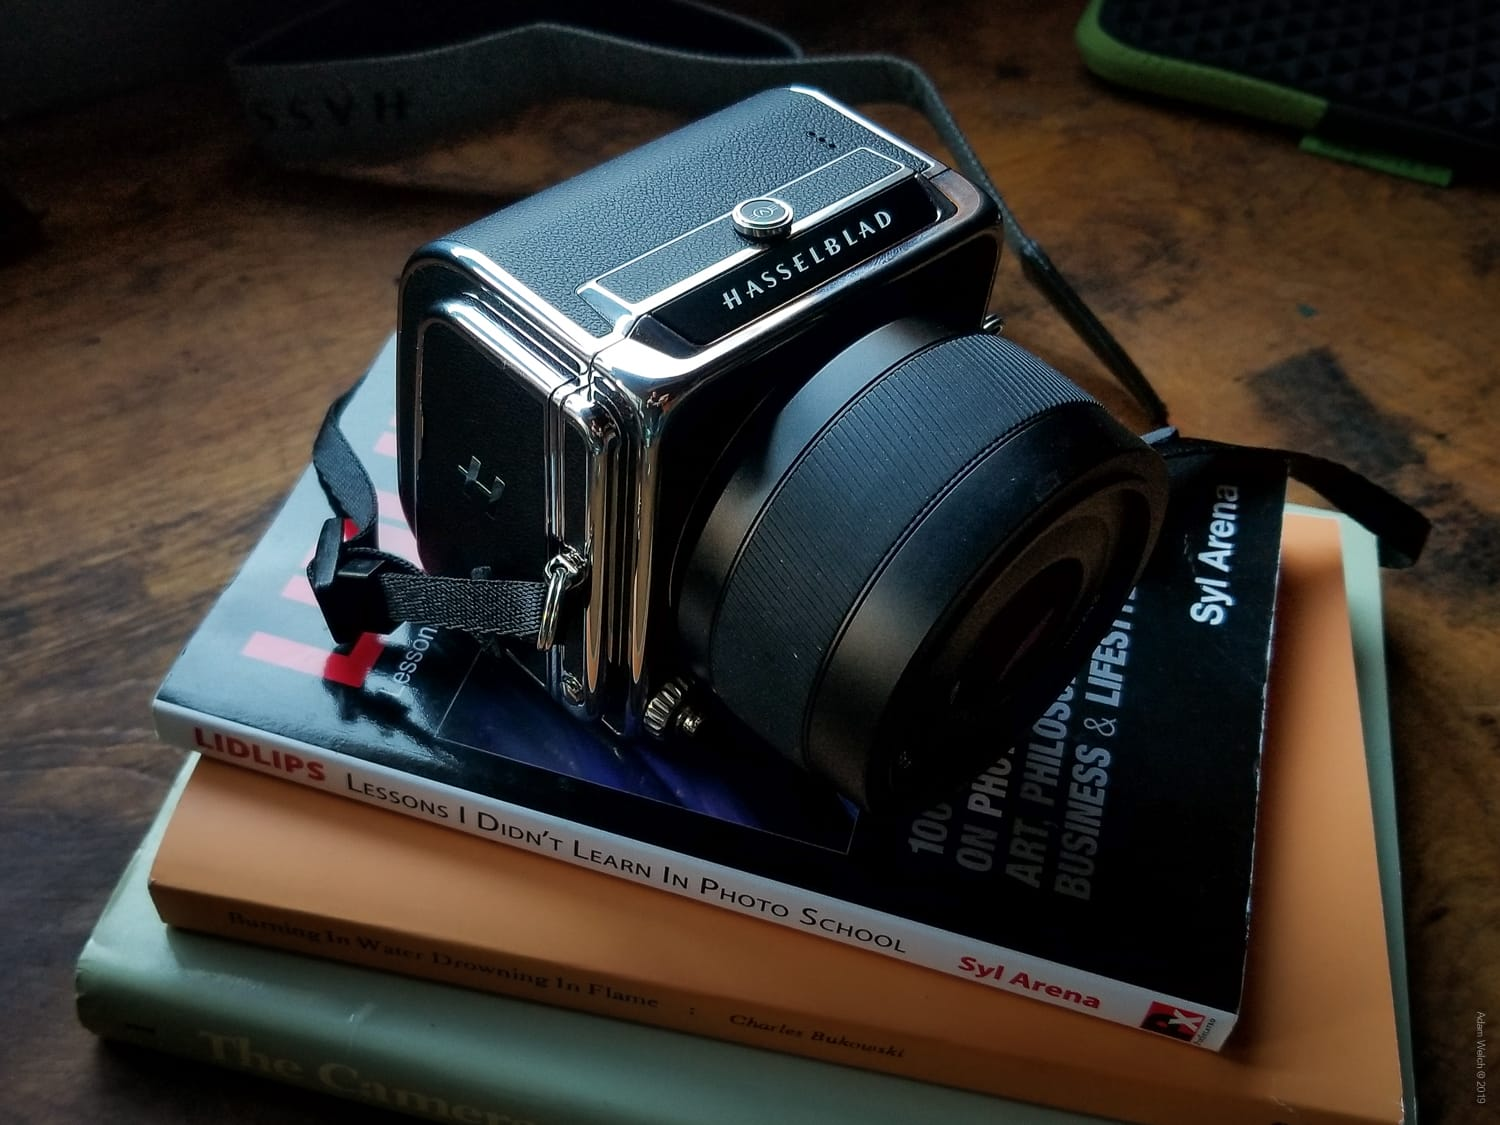 In-Depth Review of the Hasselblad 907X 50C Medium Format Mirrorless Camera